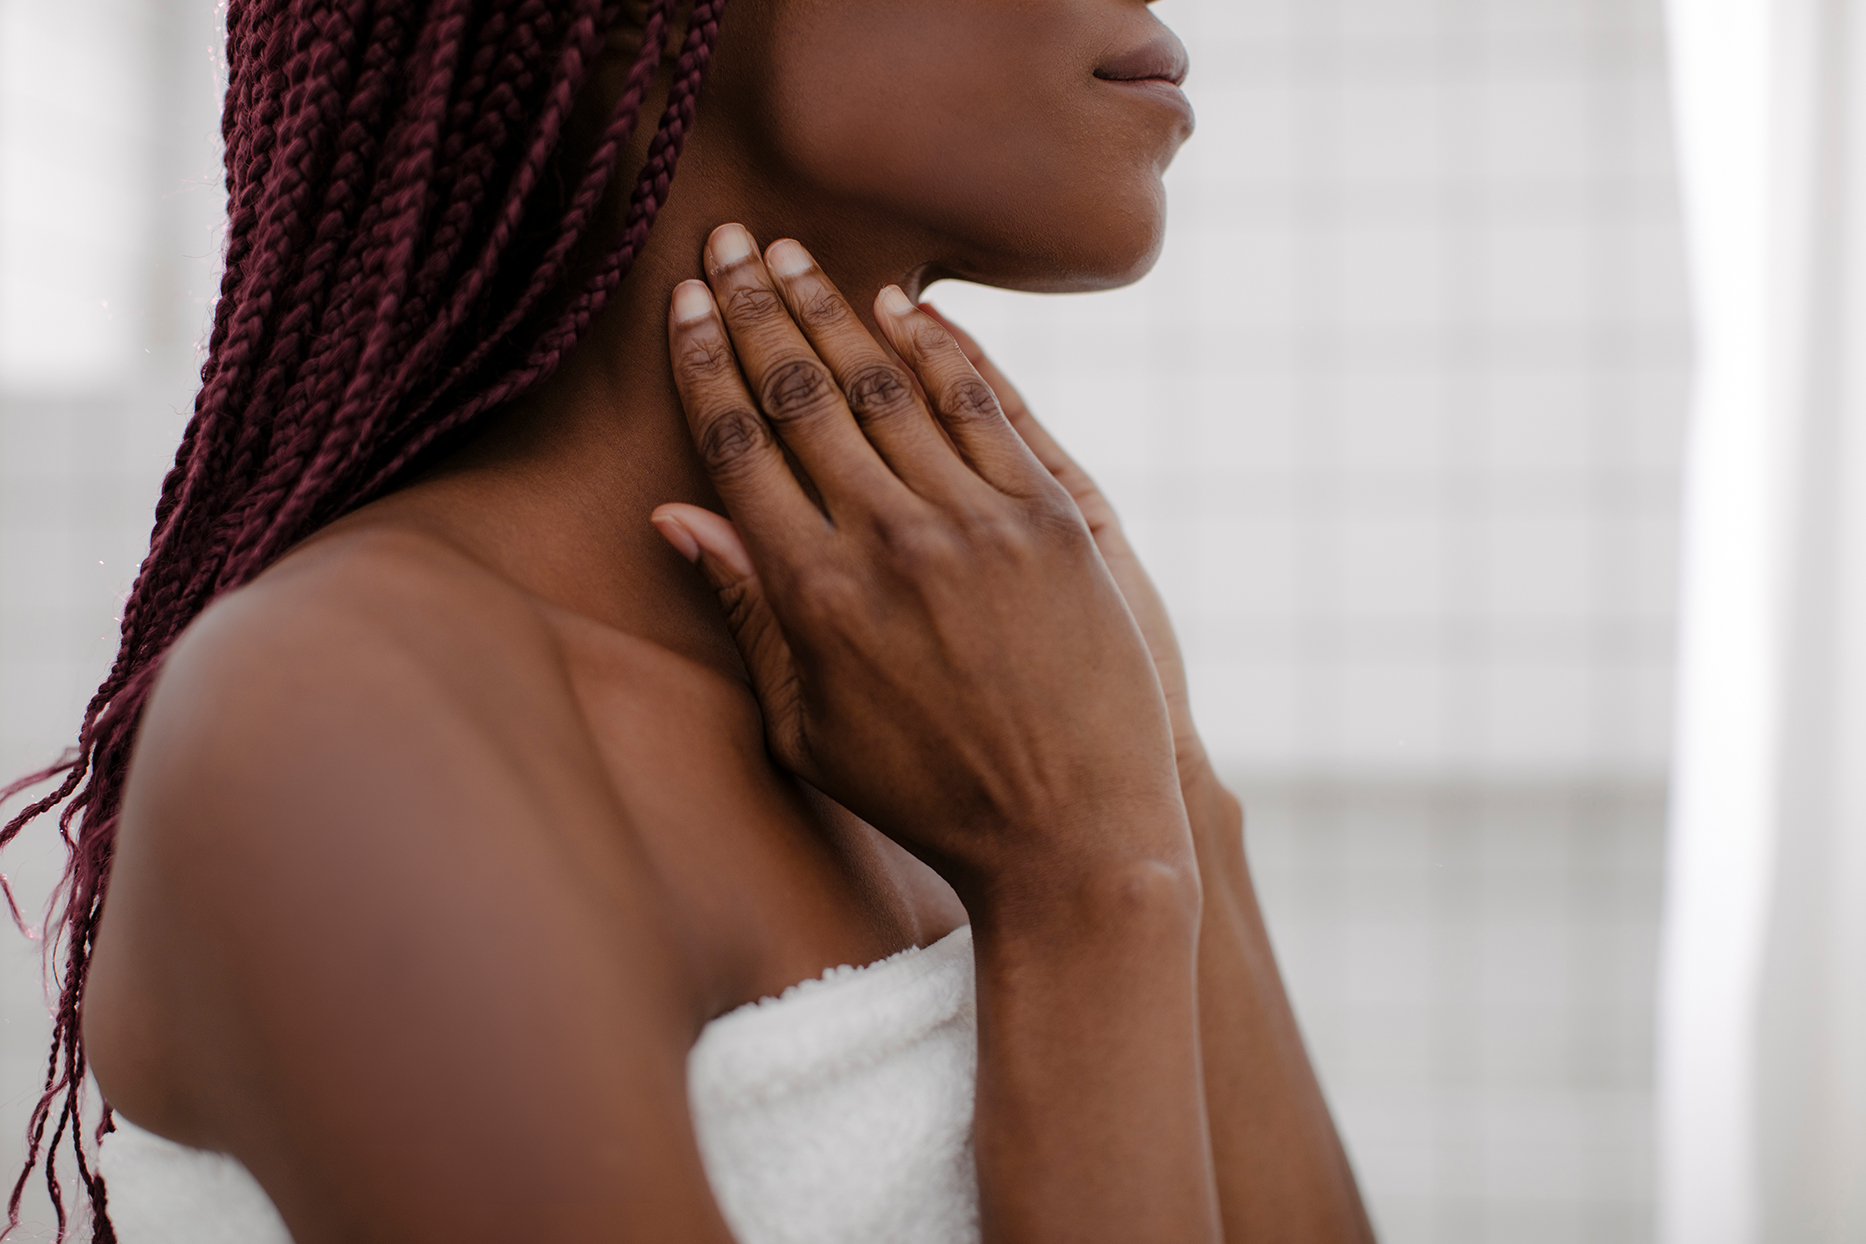 woman in towel touching neck